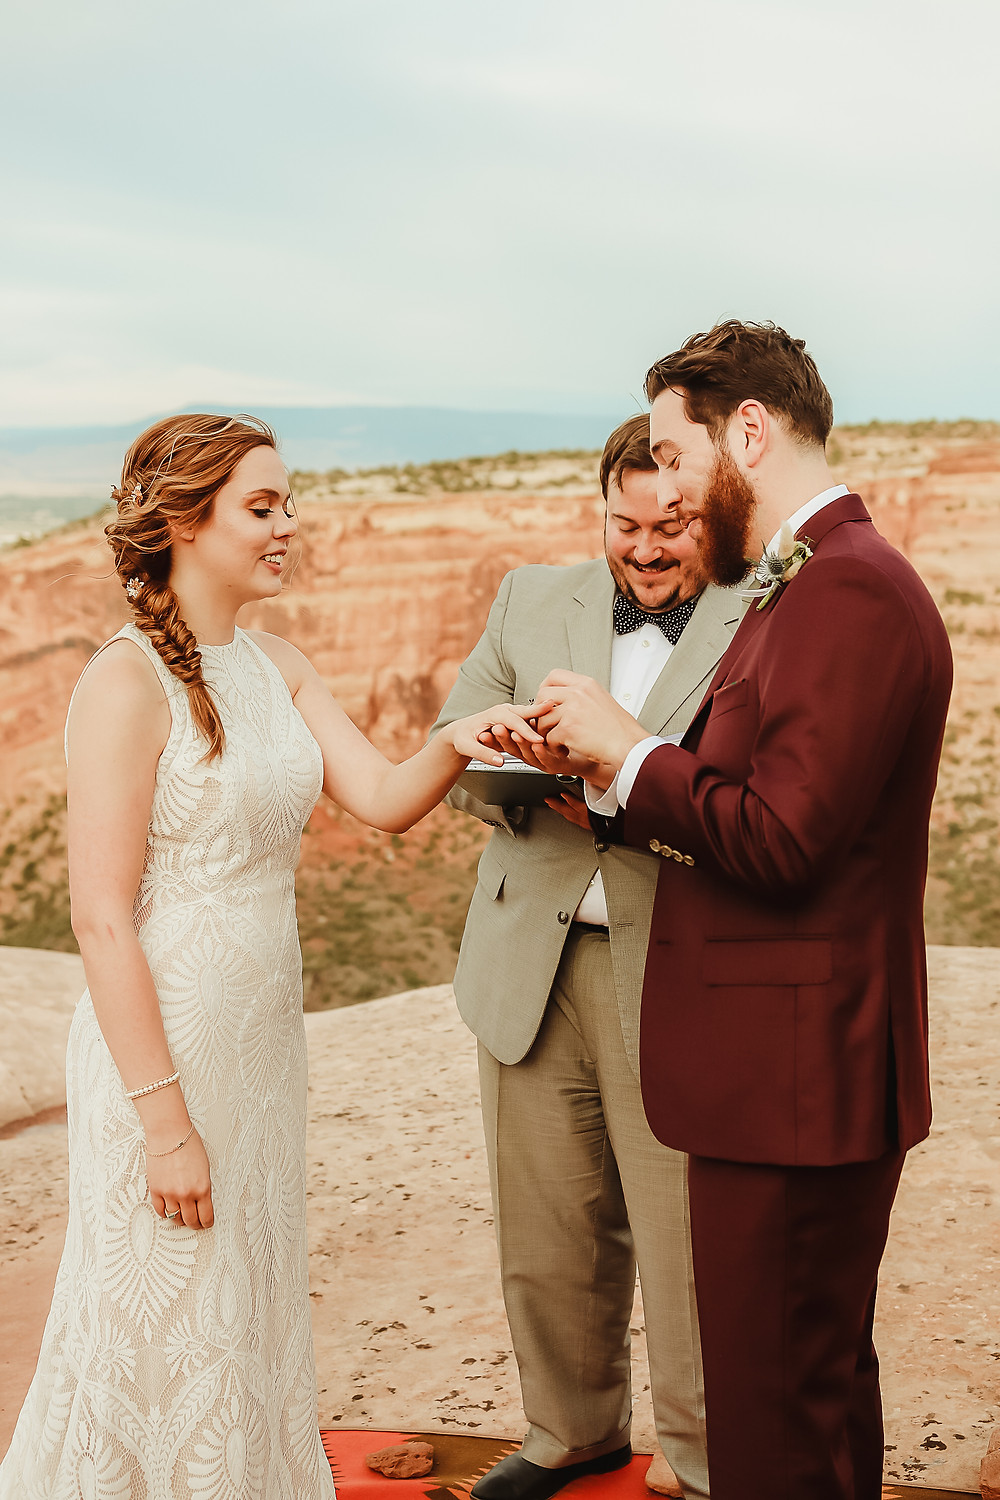 Colorado National Monument intimate elopement bride and groom elope desert scenery Bookcliff Overlook ceremony